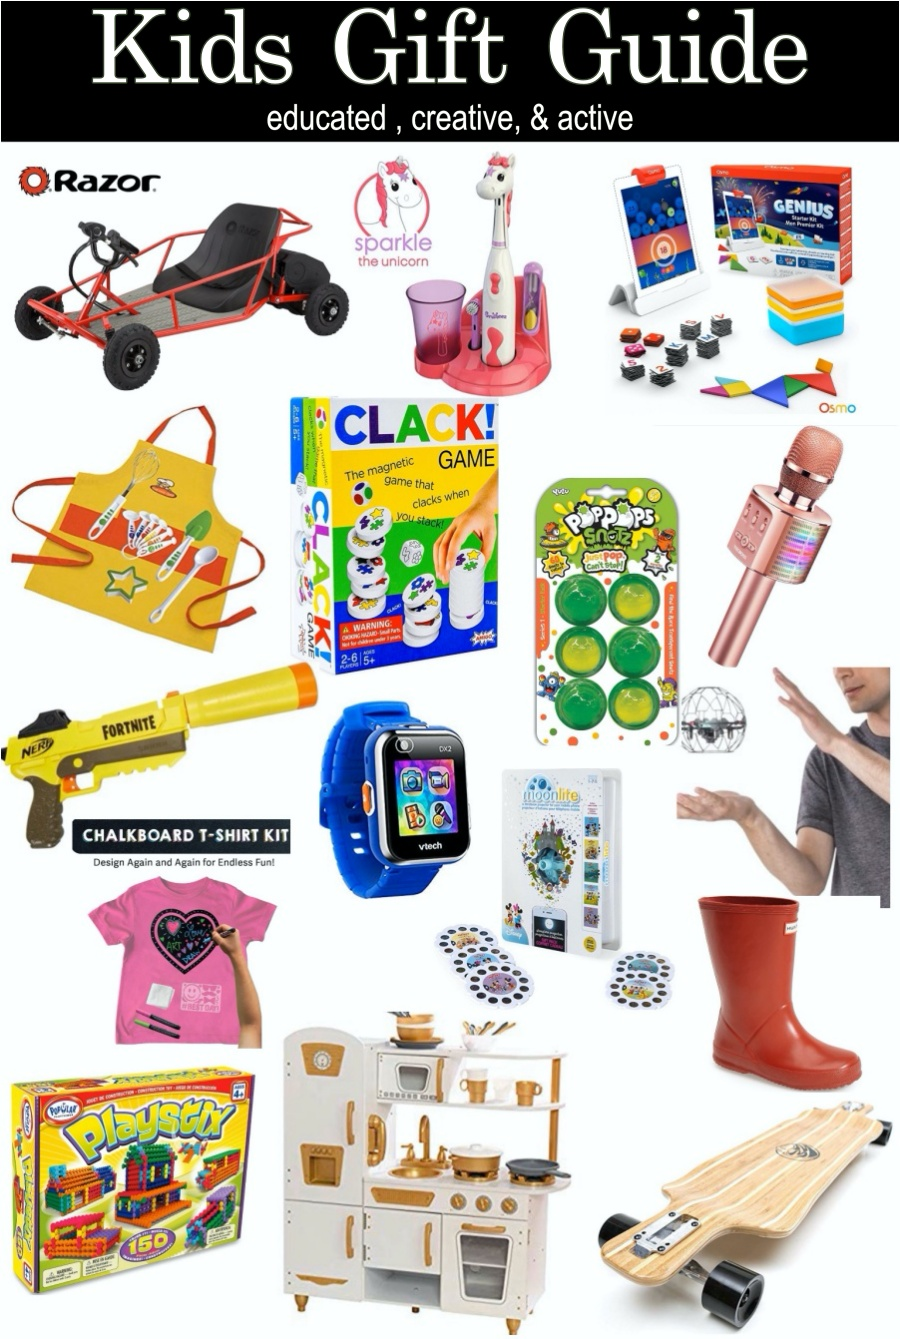 kids holiday gift guide- keep them active, create, and educated